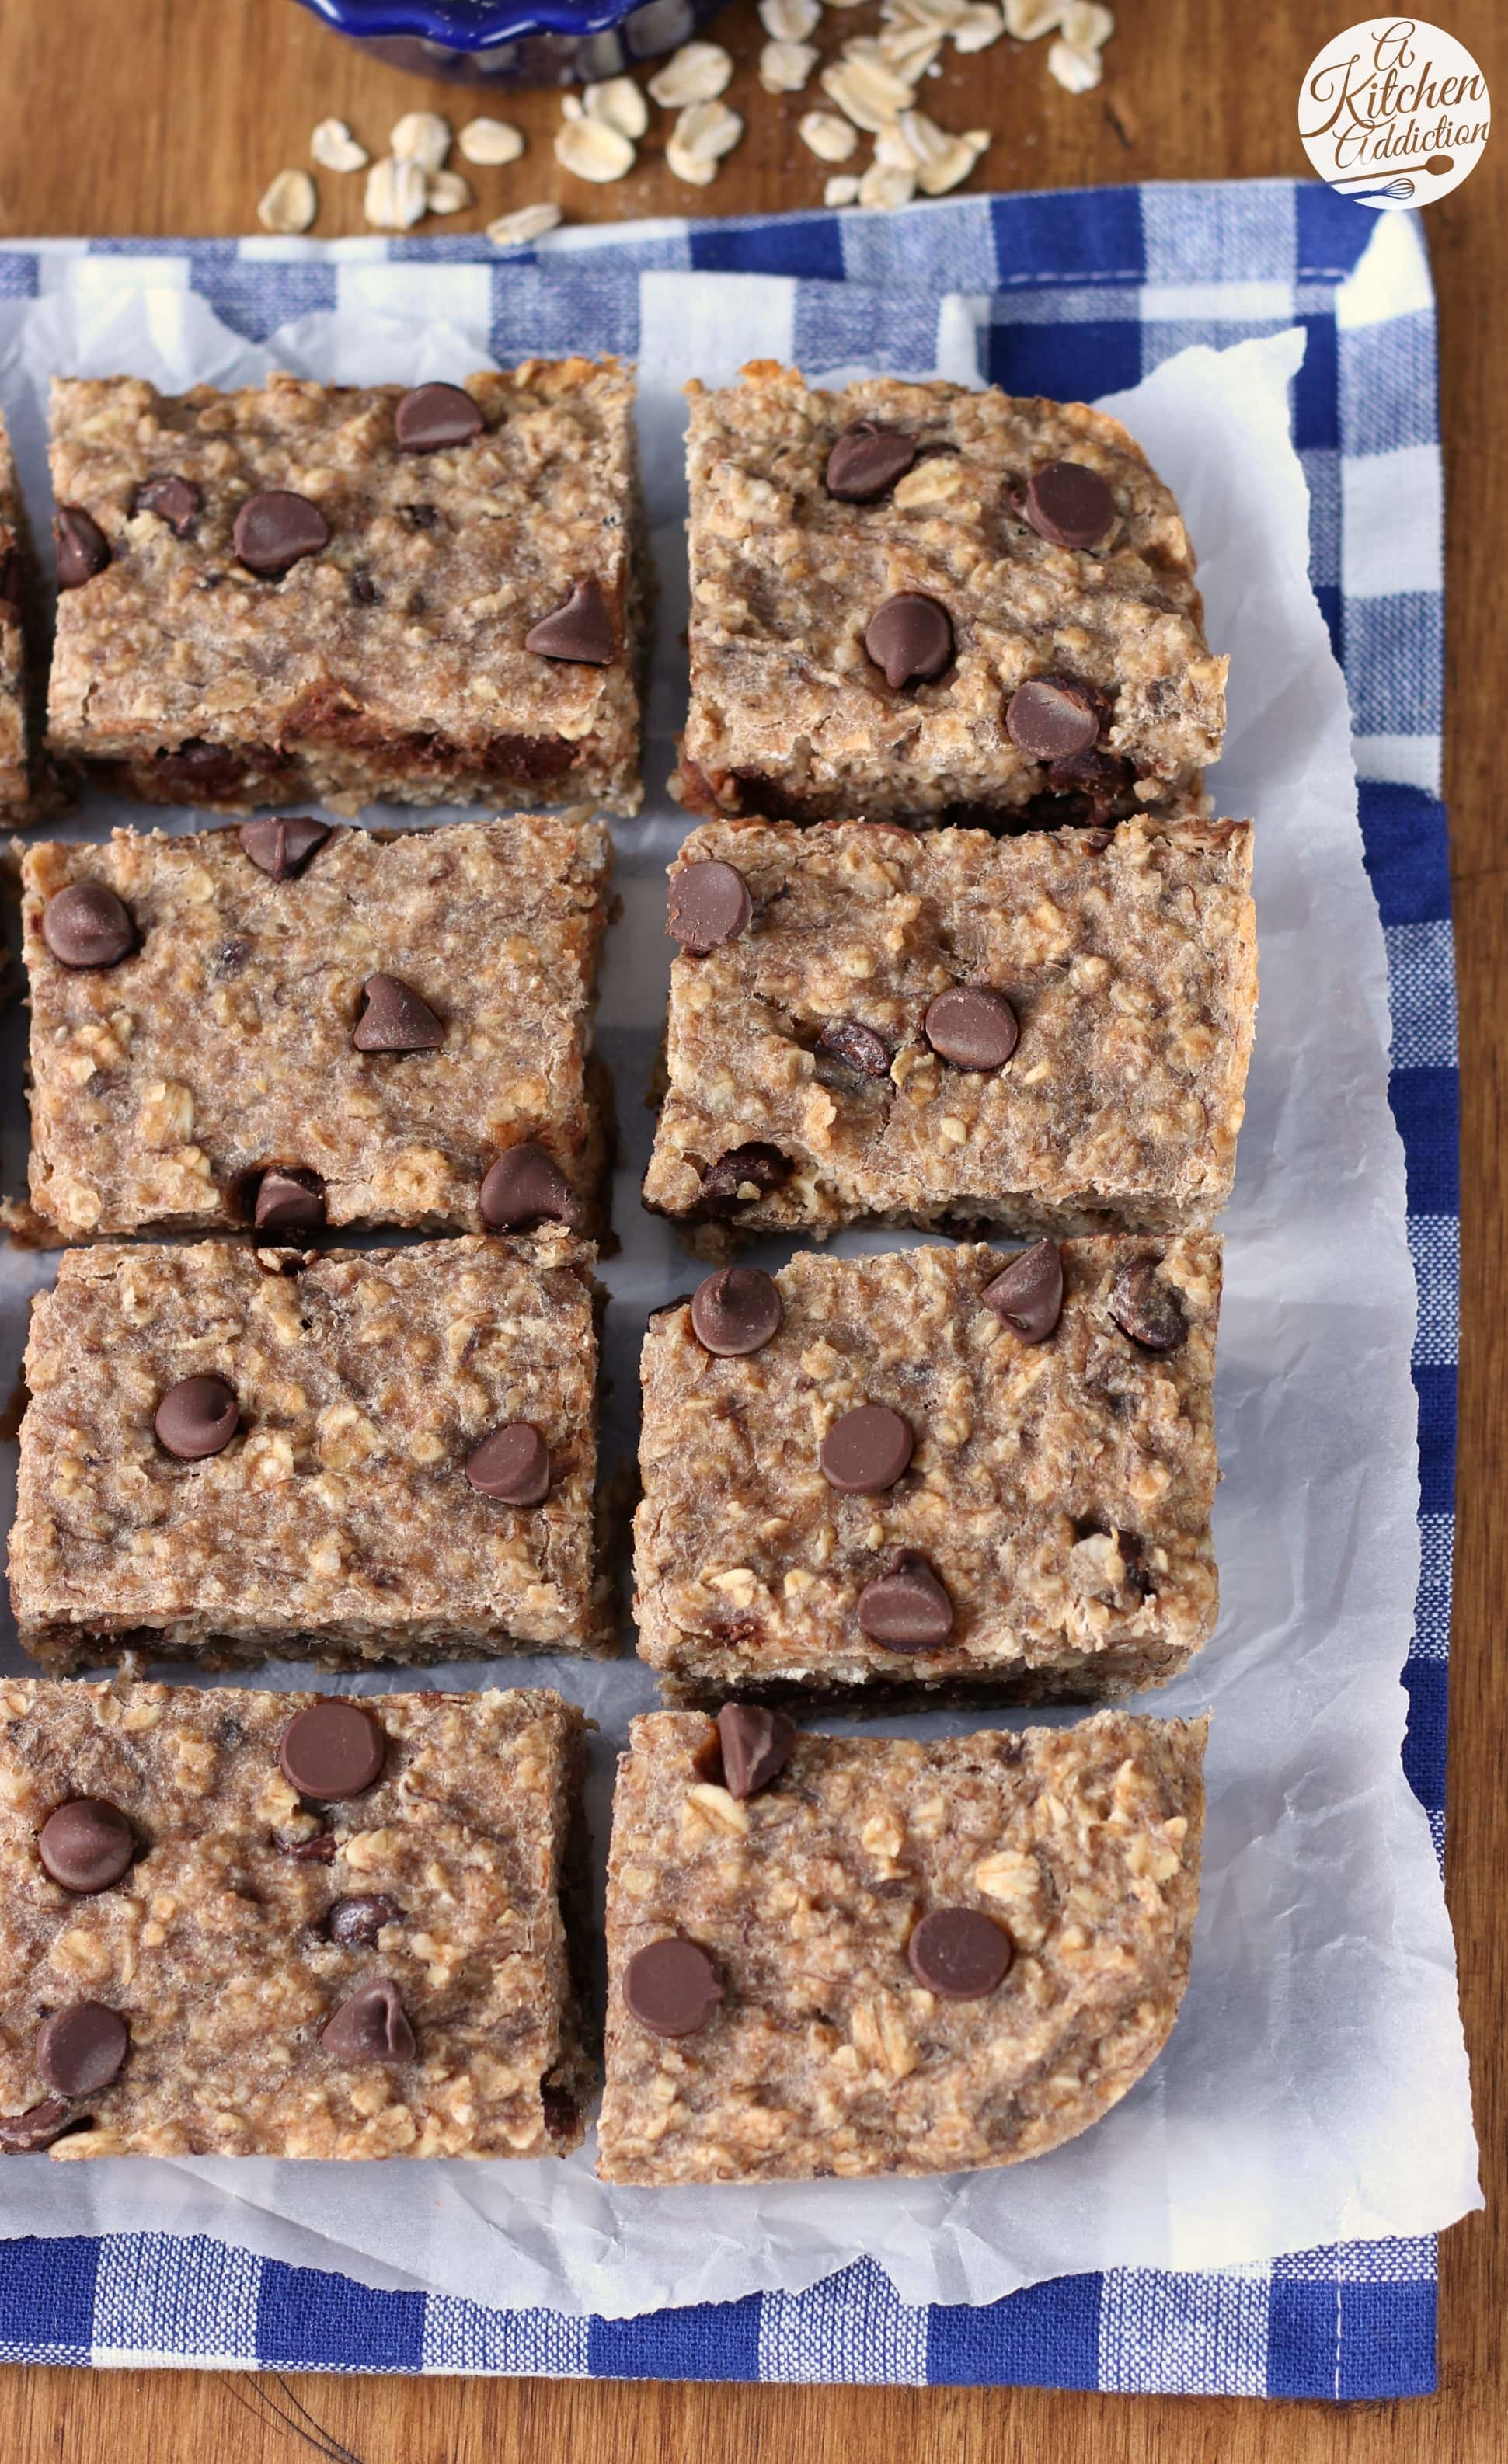 Lightened Up Chocolate Chip Banana Breakfast Bars Recipe from A Kitchen Addiction